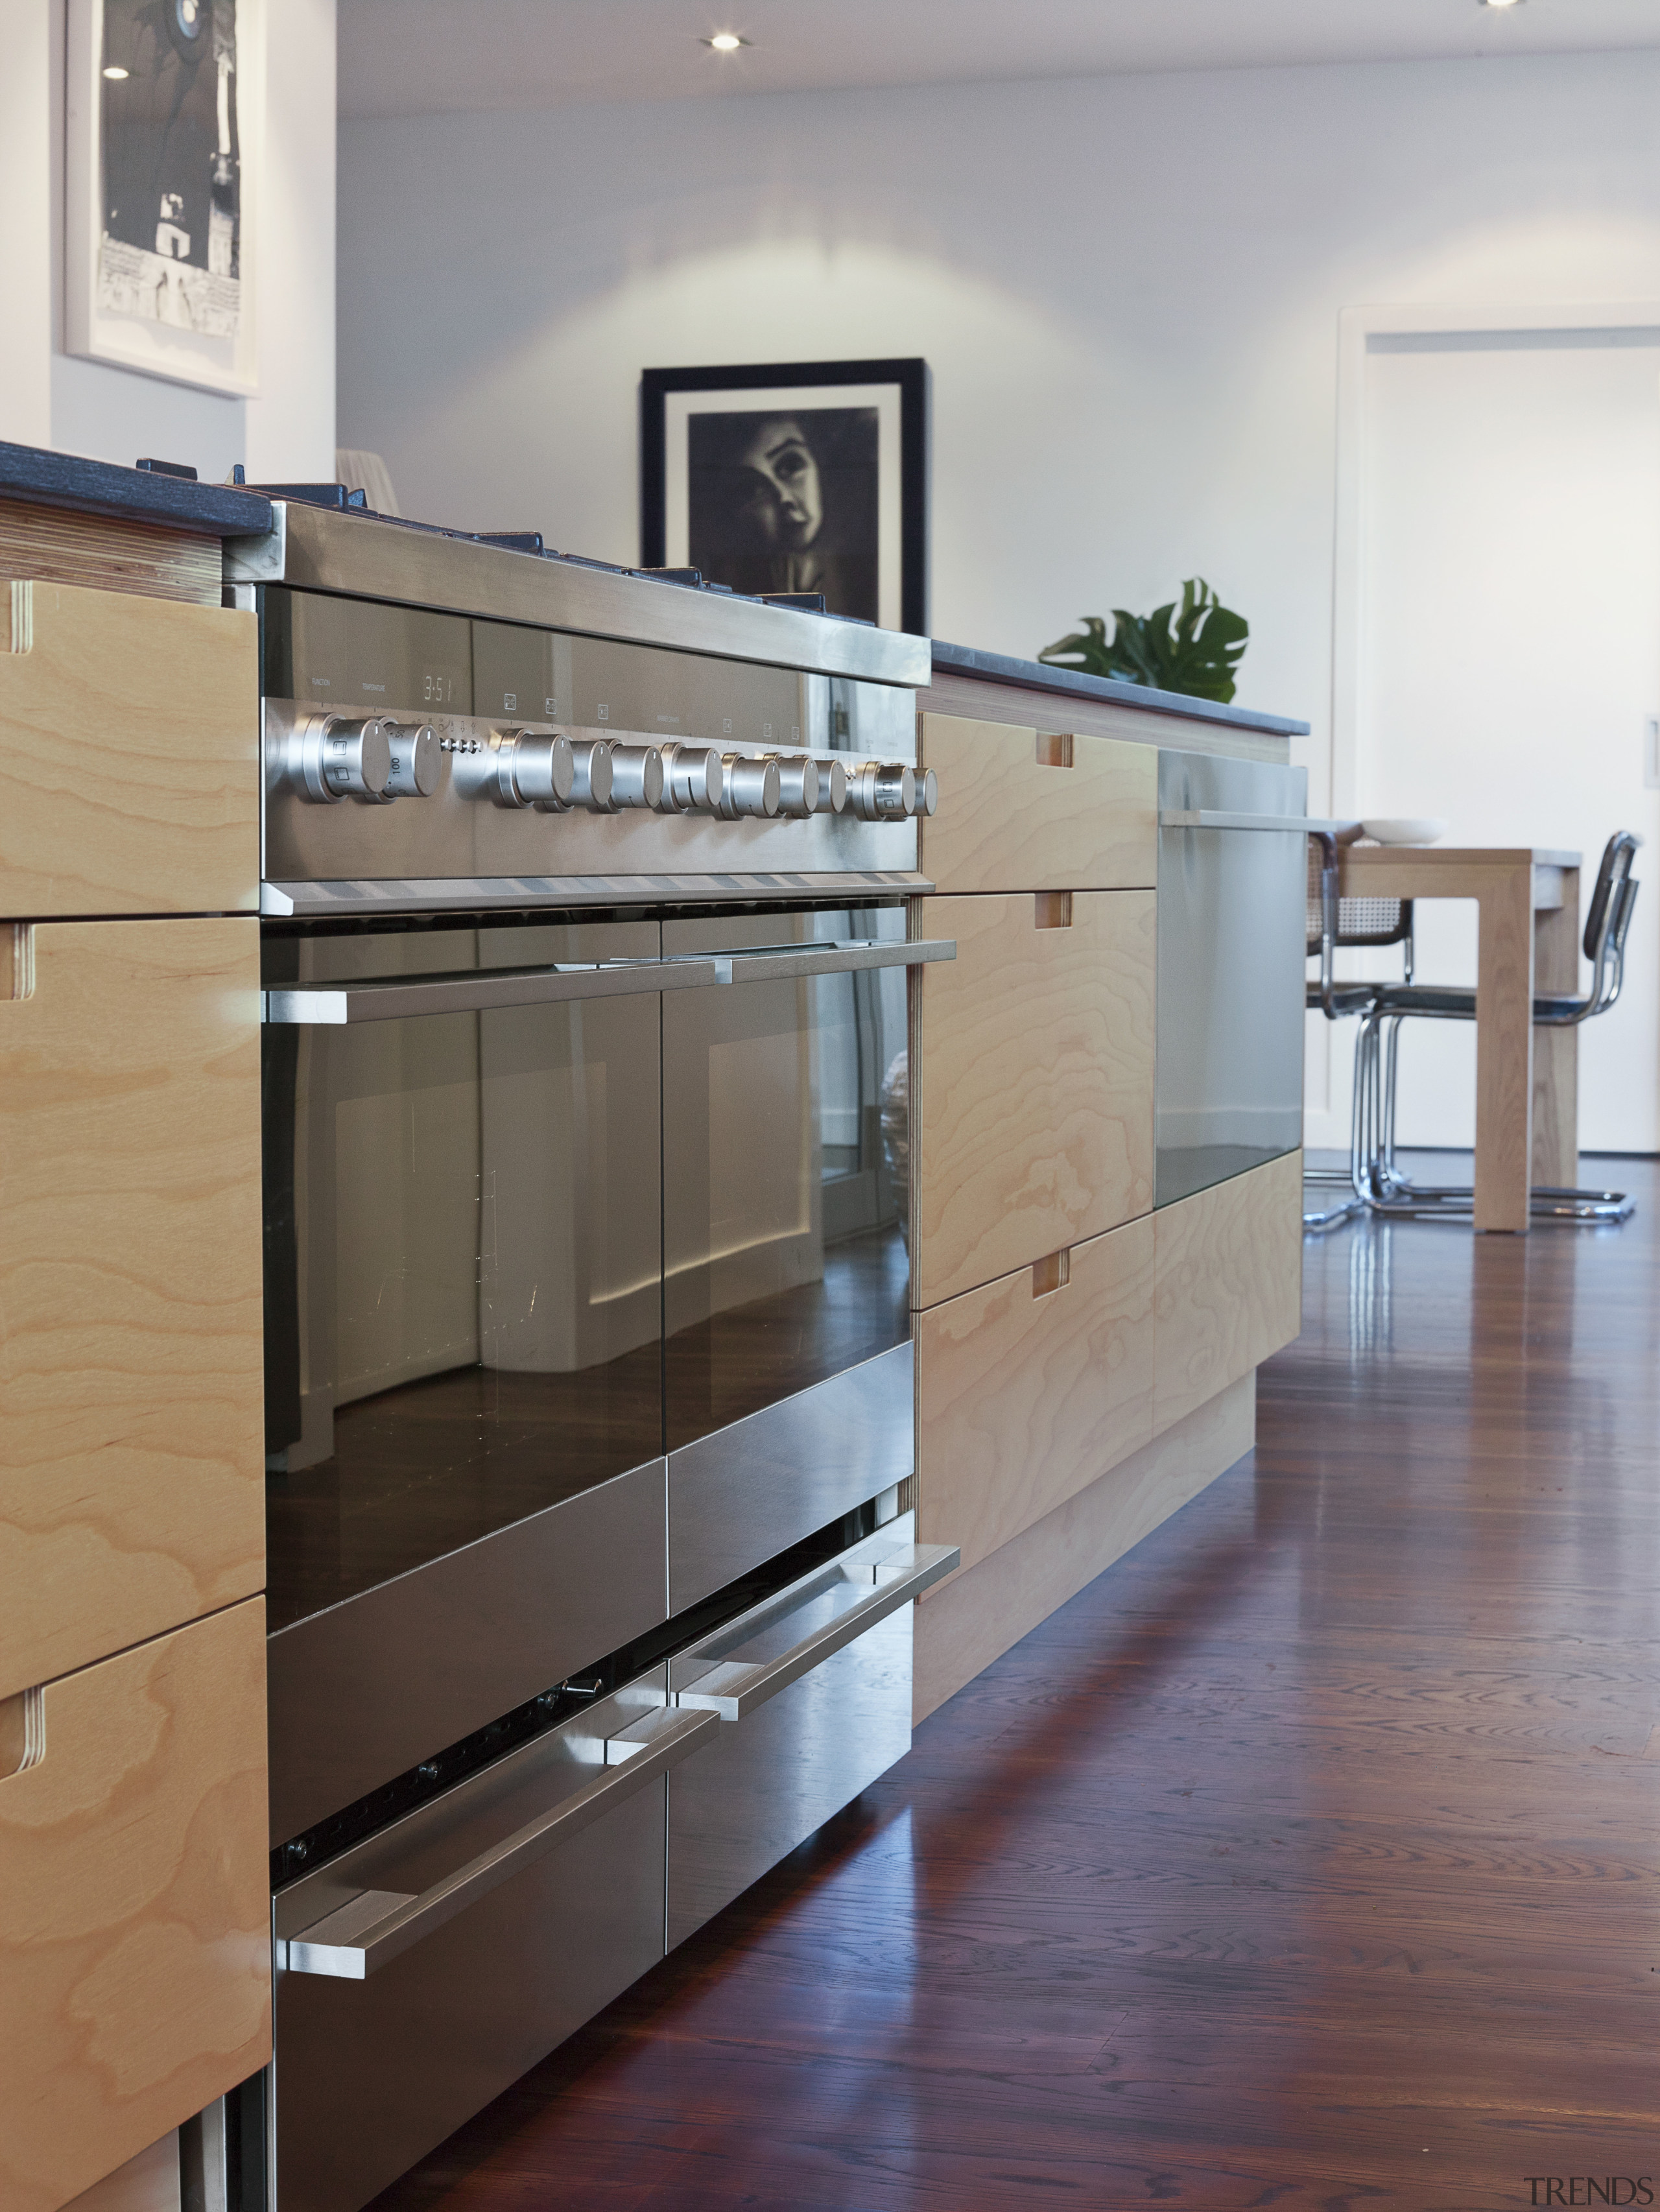 Chefs choice  Natalie Du Bois chooses Fisher cabinetry, countertop, floor, flooring, furniture, glass, hardwood, interior design, kitchen, room, wood, wood flooring, gray